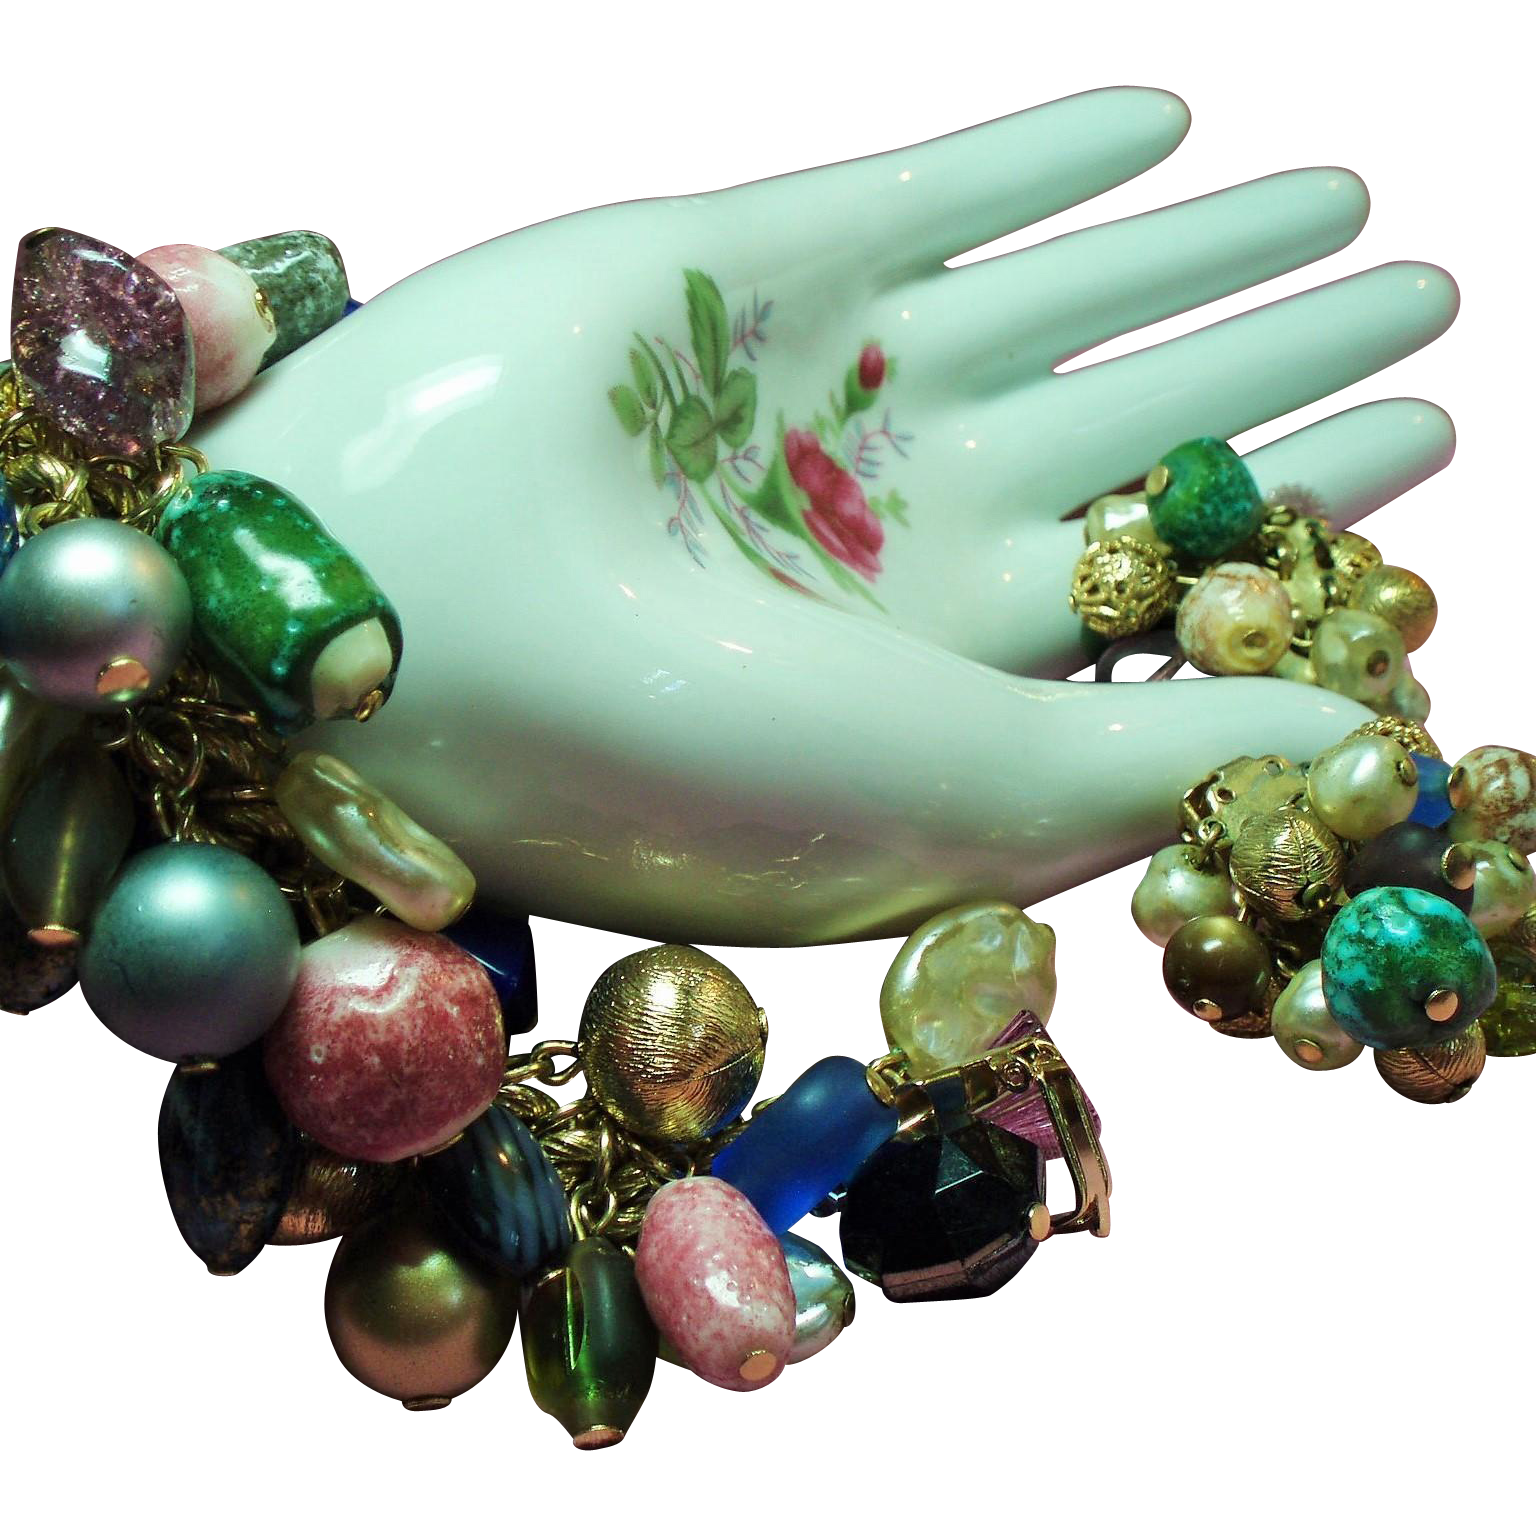 Vintage Baubles Bangles Beads Charm Bracelet Earrings Demi Parure